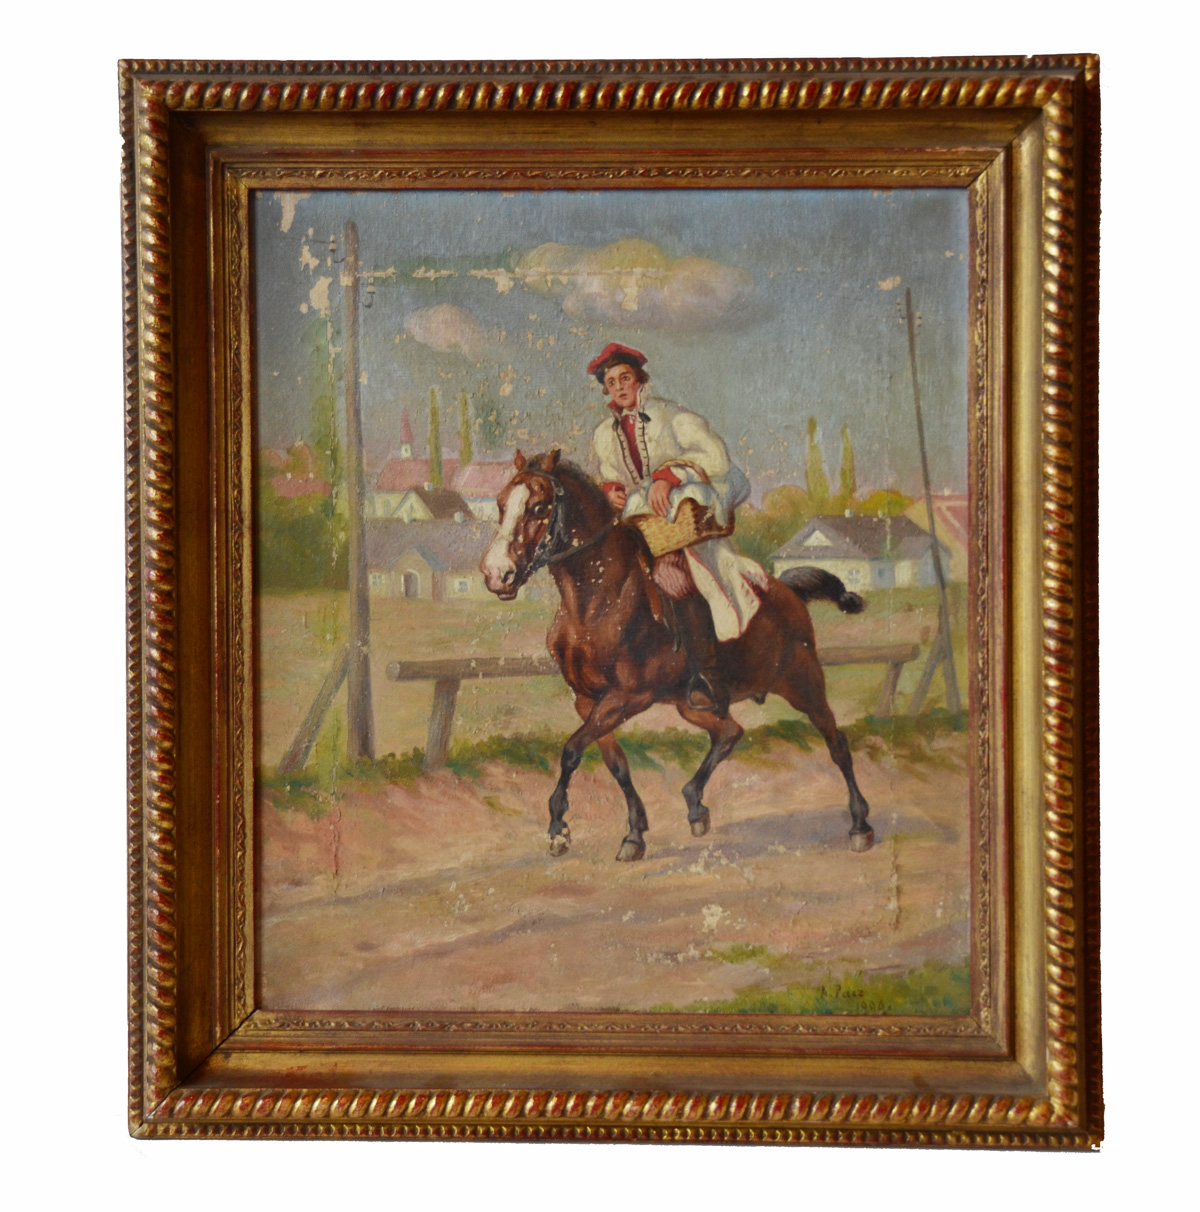 Antique 1900s Equestrian Oil Painting Stunning-